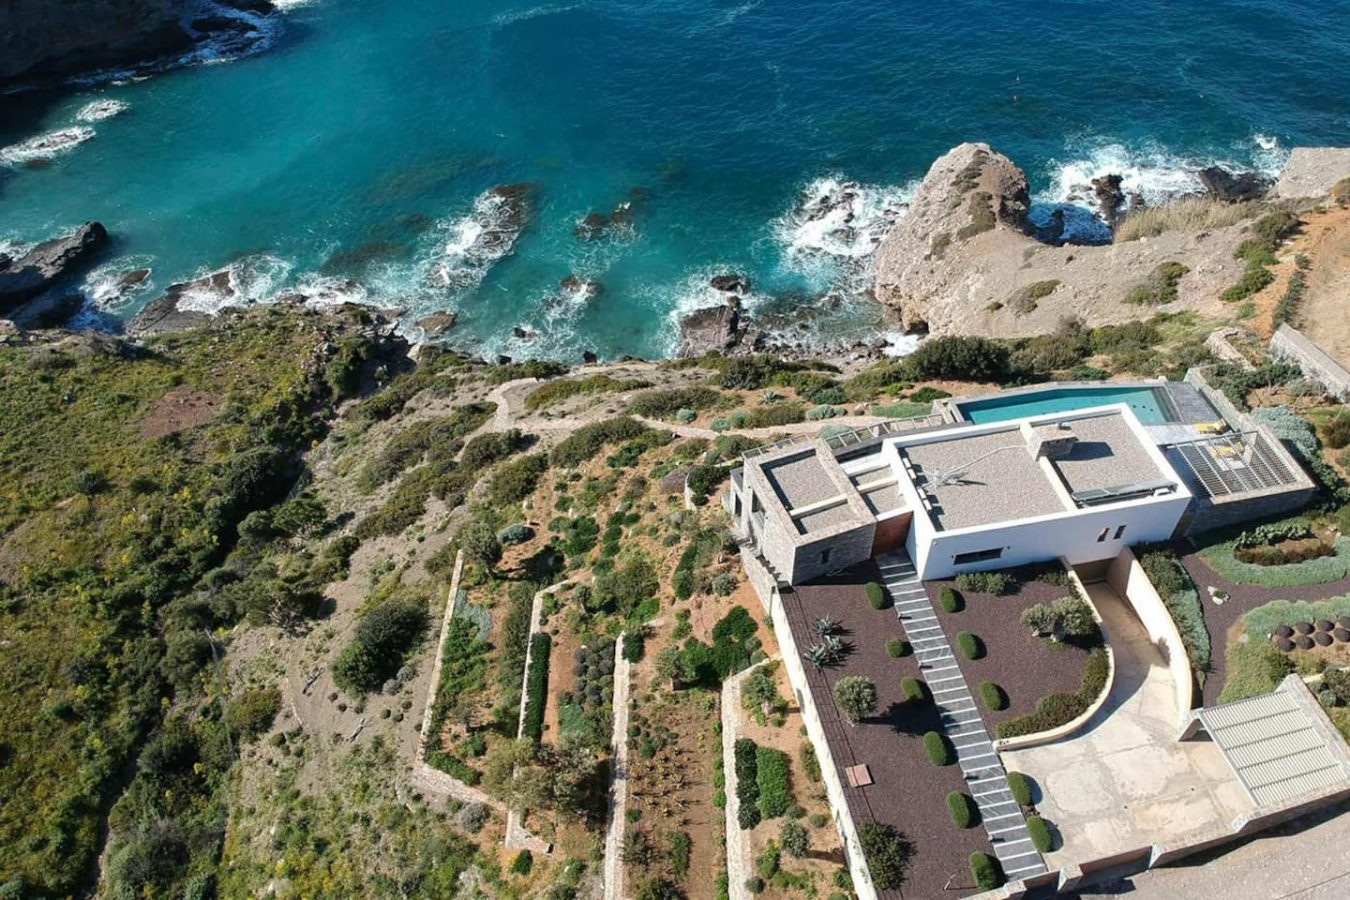 Aerial view of the Villa Faros